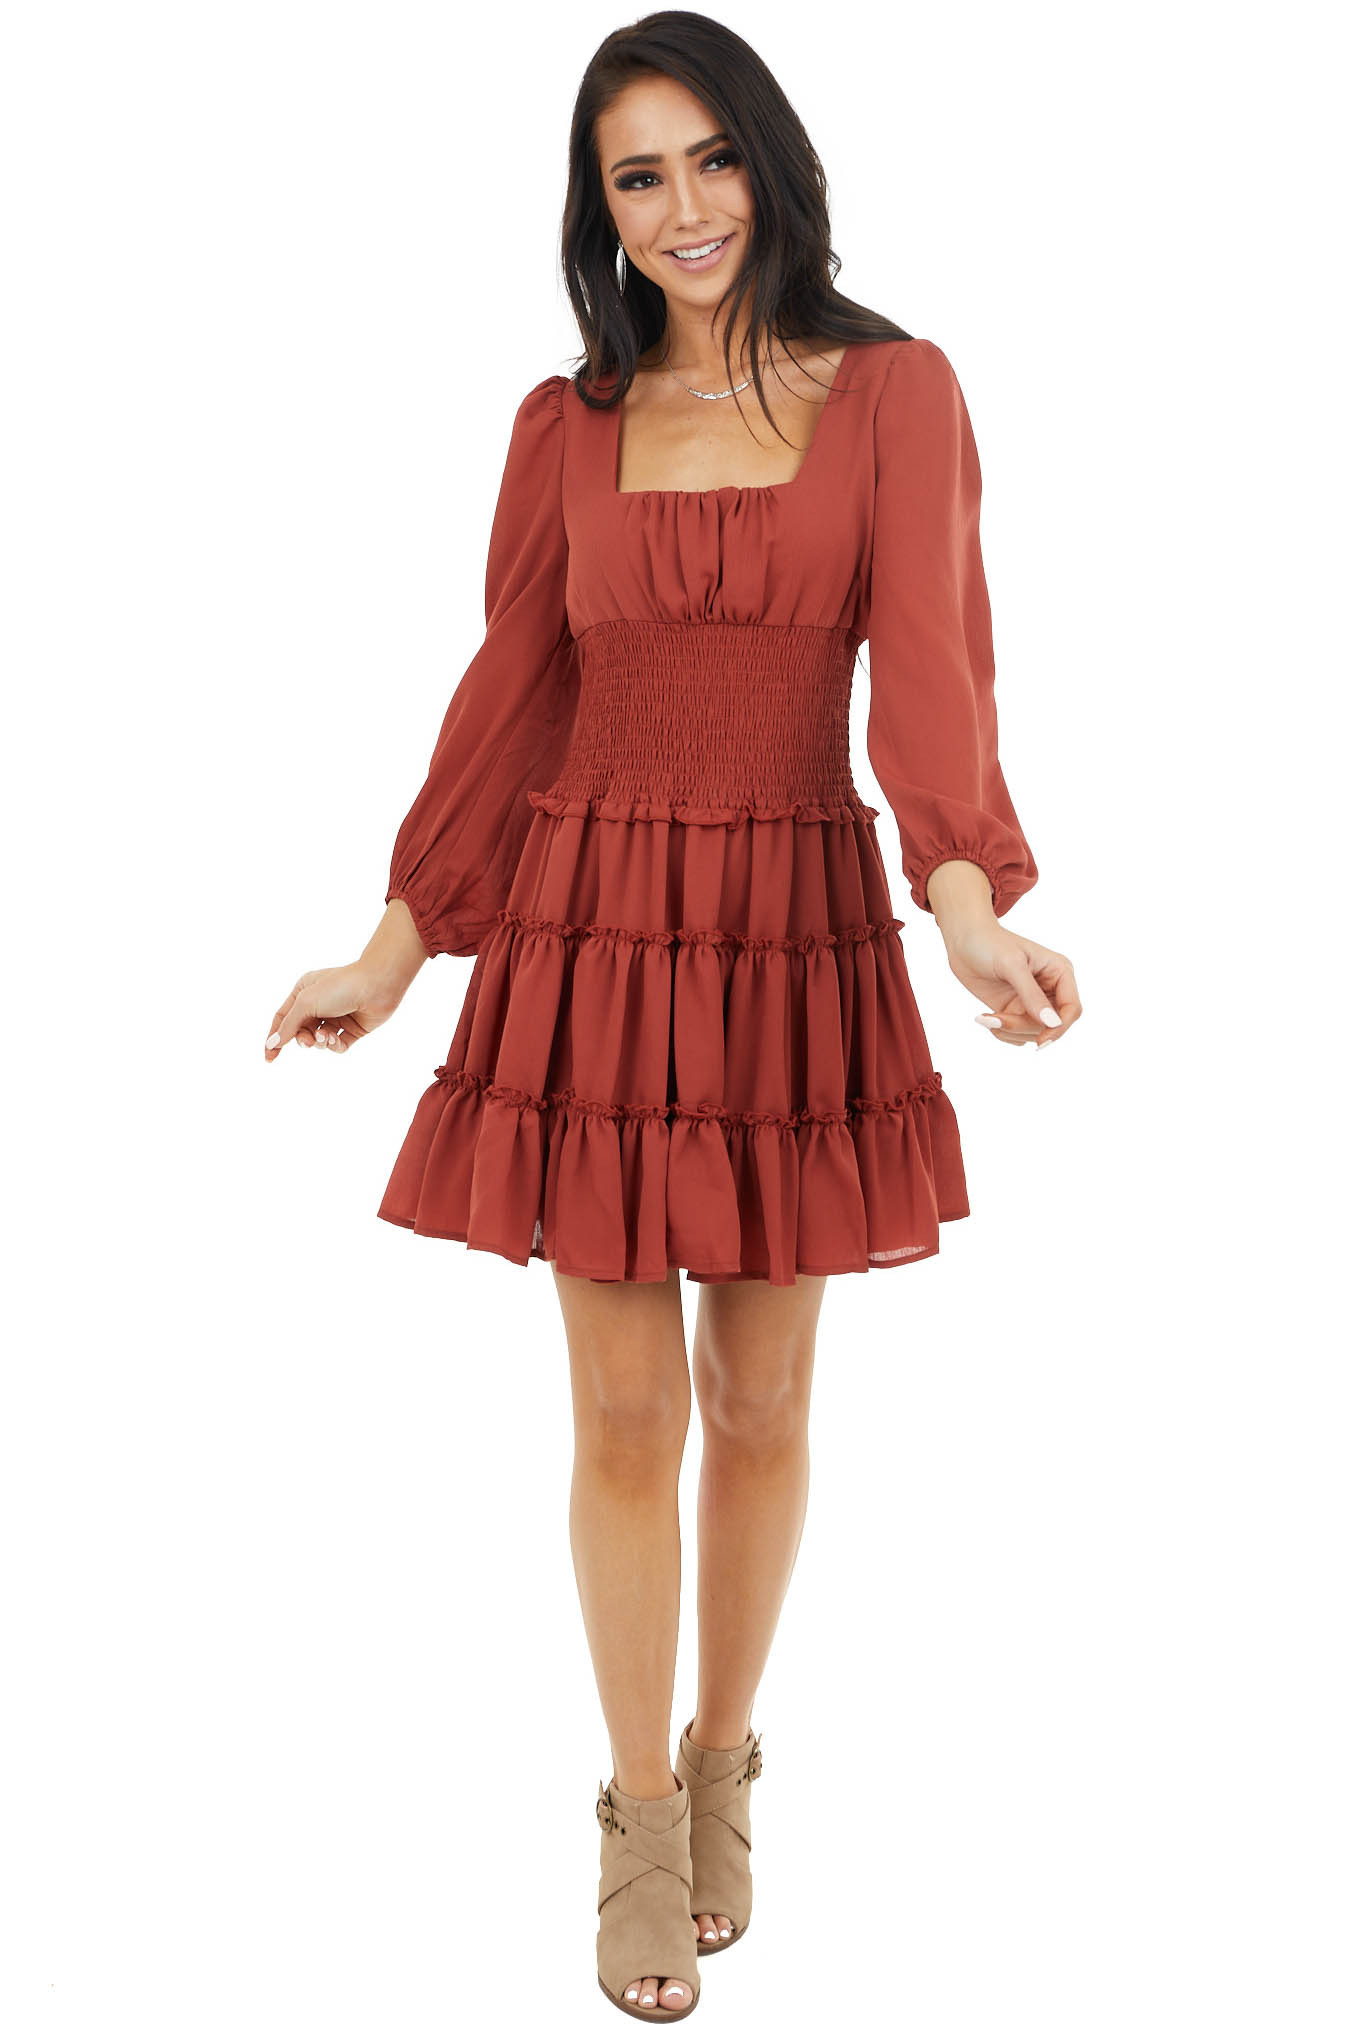 Rust Tiered Dress with Smocked Waist and Puff Sleeves